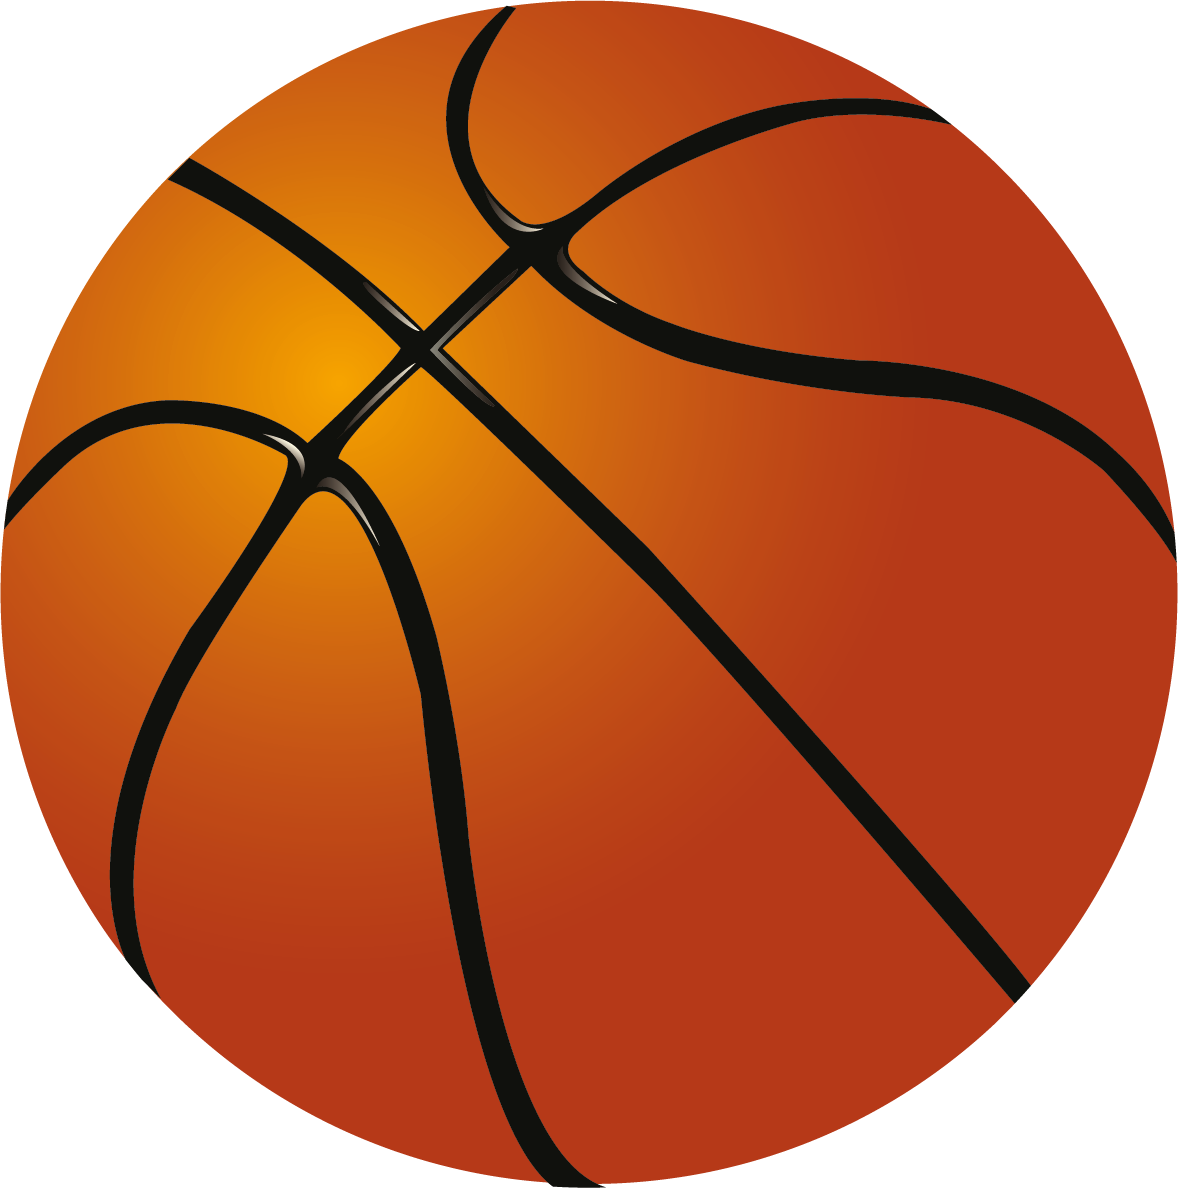 Fancy basketball clipart. Ball buscar con google